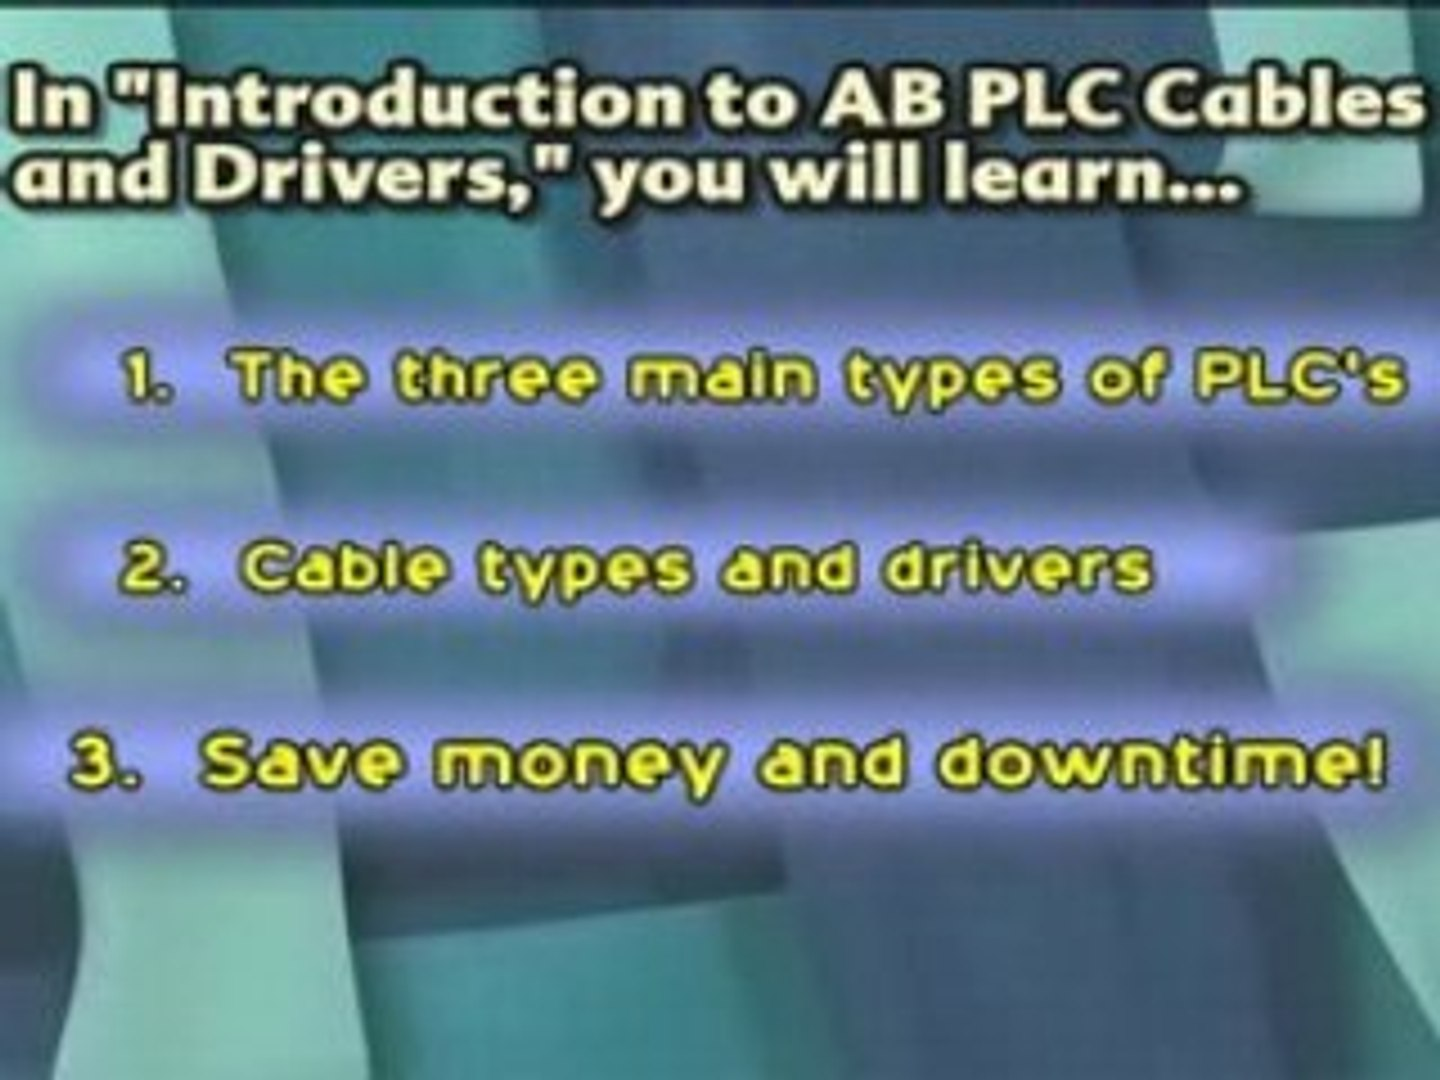 AB PLC Cables and Drivers